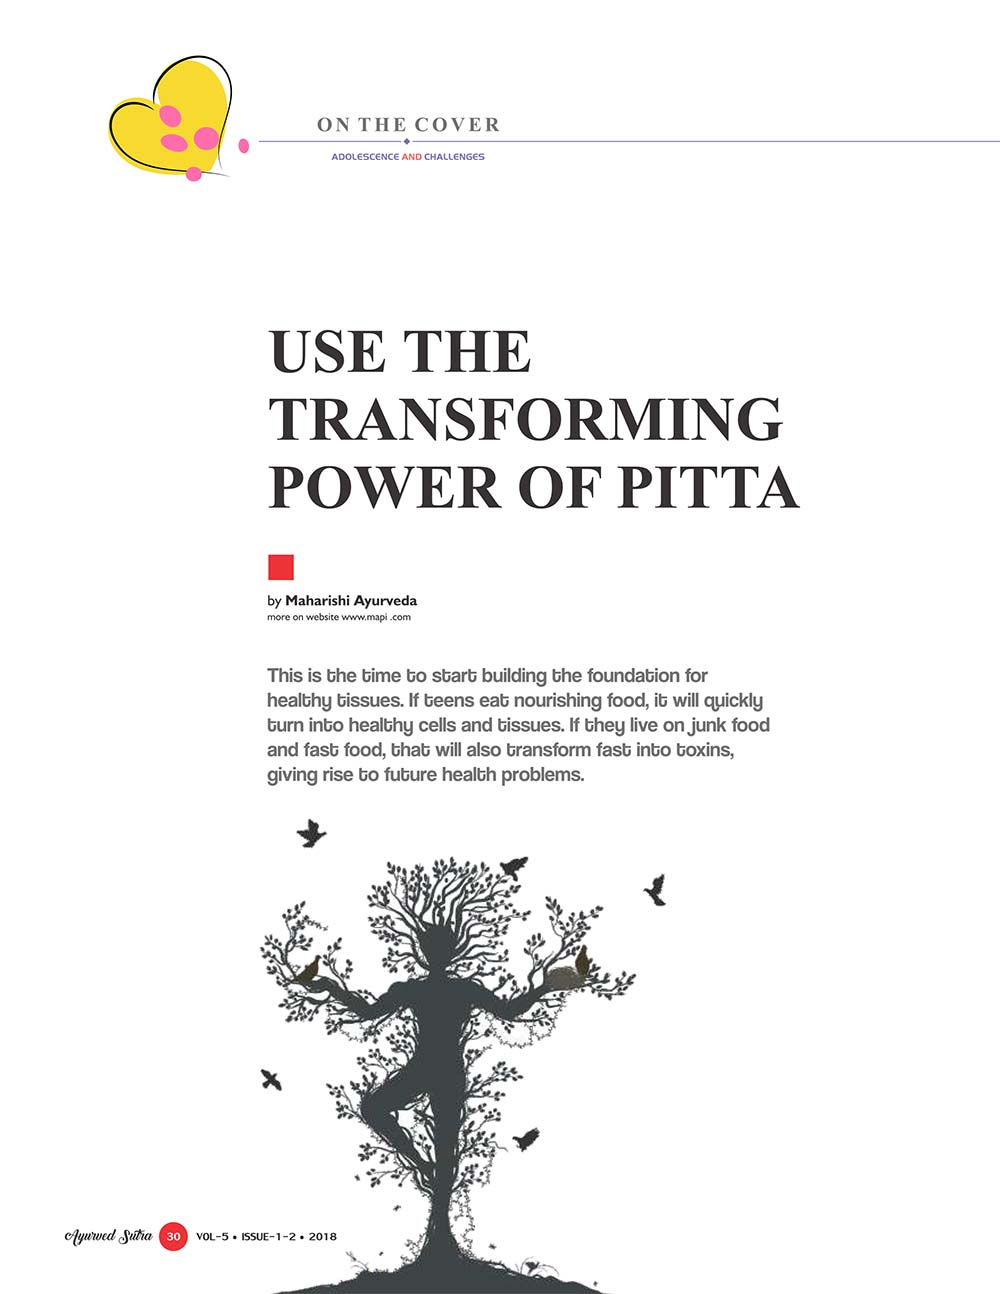 Ayurvedsutra Vol 05 issue 01 02 32 - Use the transforming power of Pitta